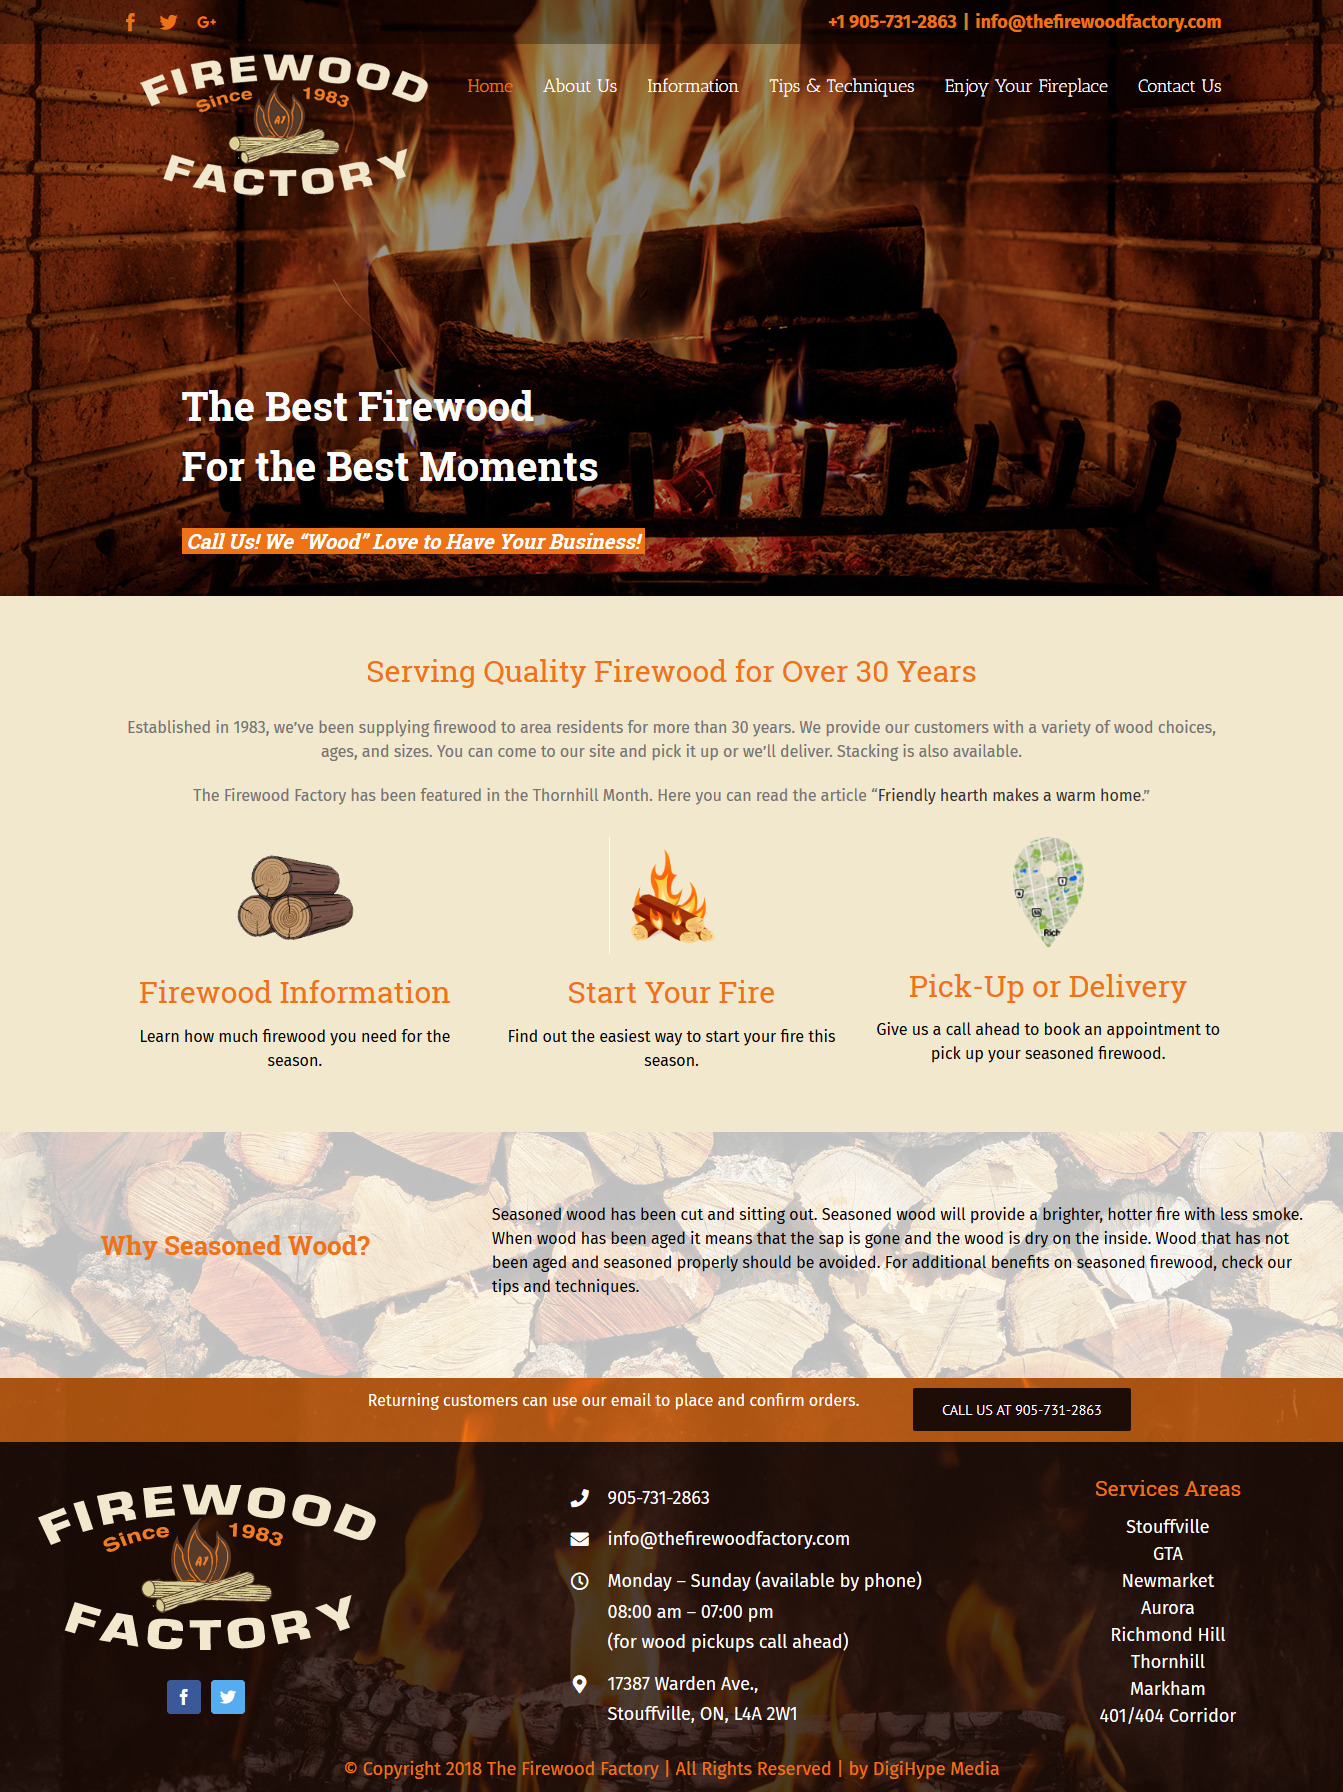 Firewood service in Ontario (UX custom website design in Mississauga)